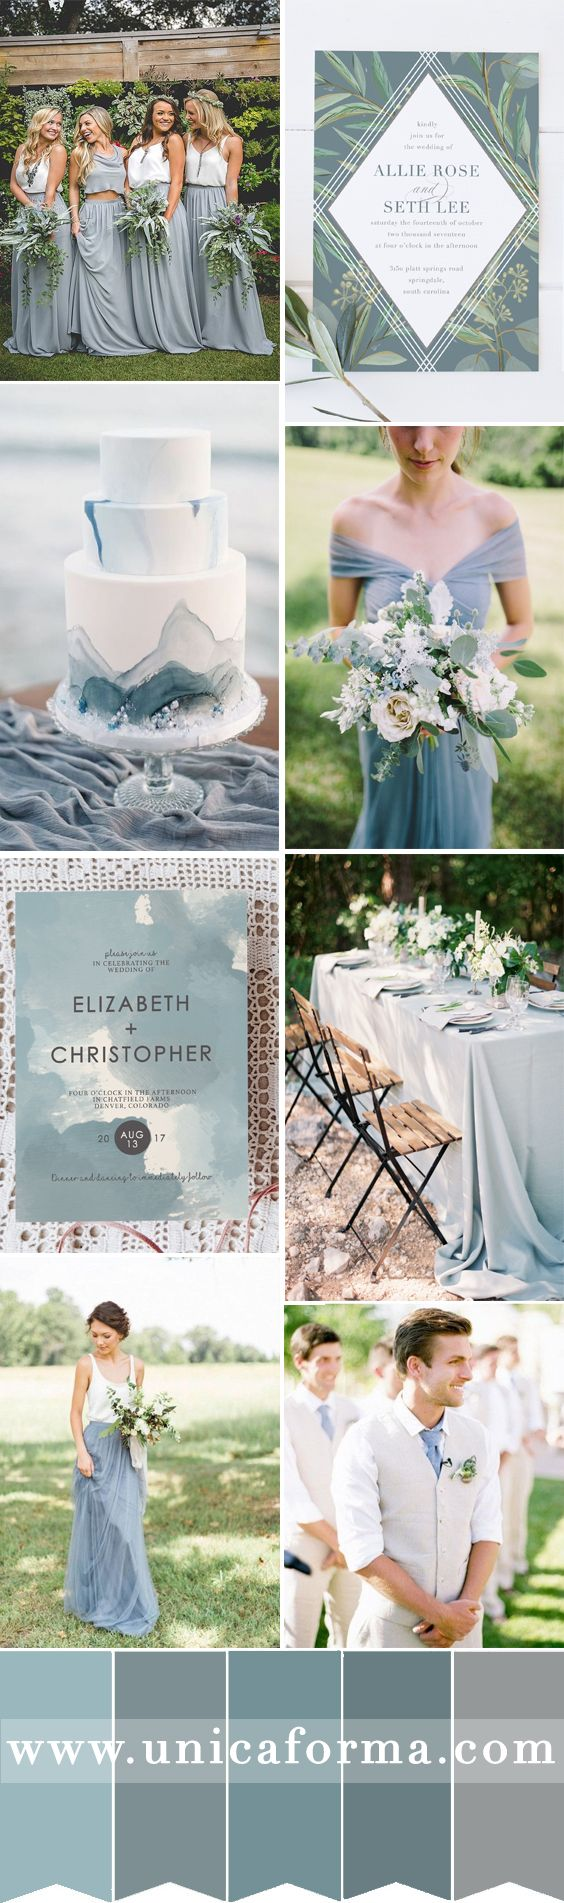 Slate blue wedding with grey accents. Dusty blue wedding. Boho wedding. Bohemian bridesmaids dresses. Slate wedding cake. Dusty blue bouquet. Marble wedding cake. Watercolor wedding invitations. Dusty Blue wedding invitations. Rustic wedding. Garden wedding. Eucalyptus leaves wedding. Dusty Blue groomsmen. Slate blue bridesmaids. Light blue wedding. Iron grey wedding palette. Invitations by @UnicaForma_